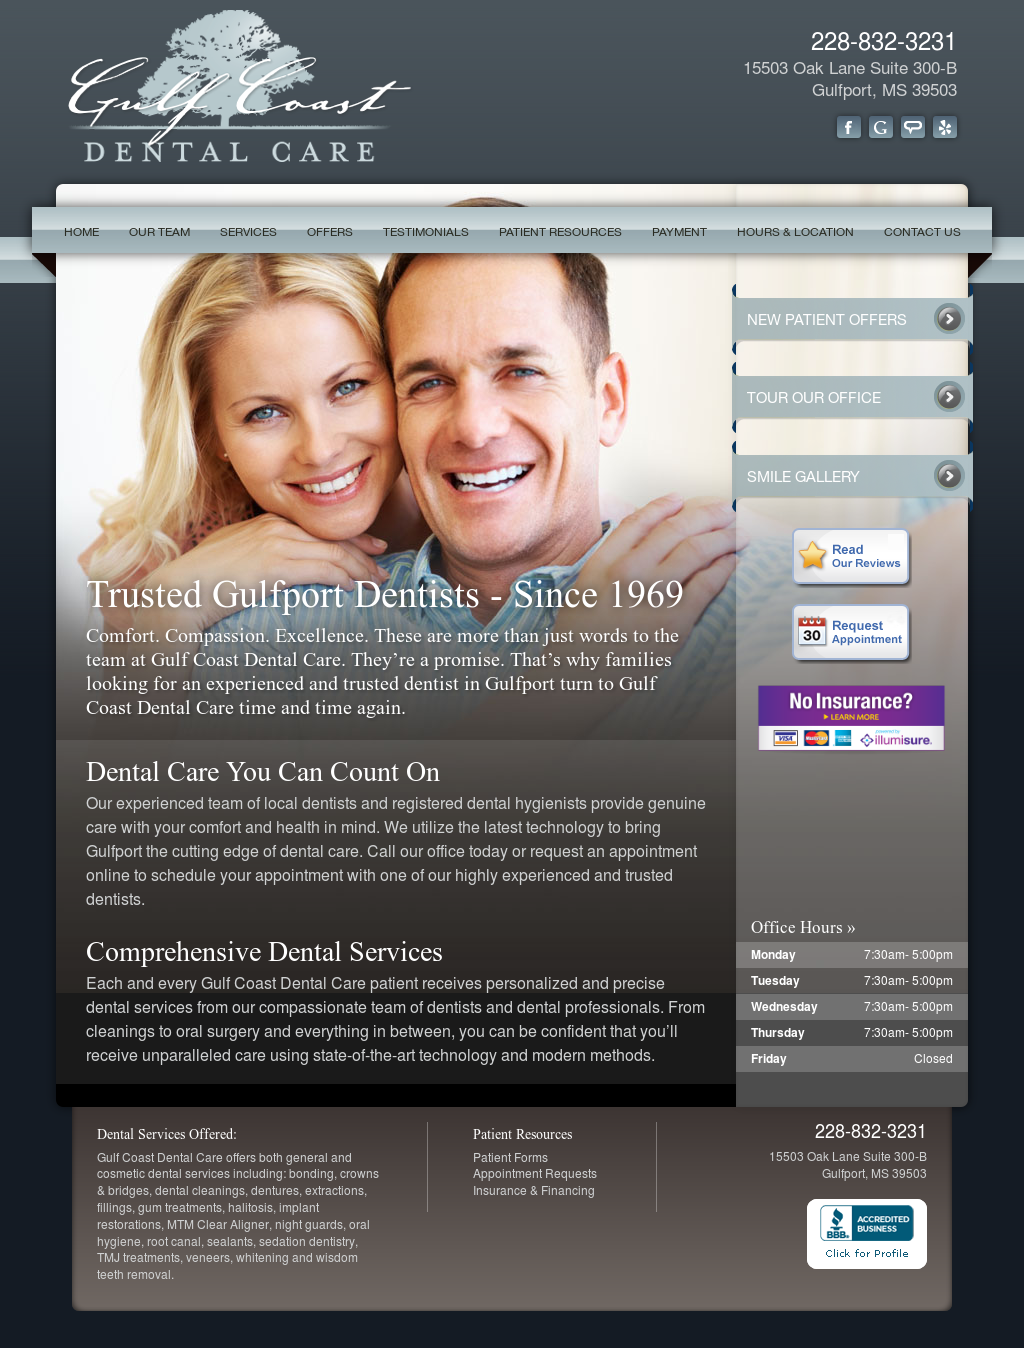 Gulf Coast Dental Care Competitors, Revenue and Employees